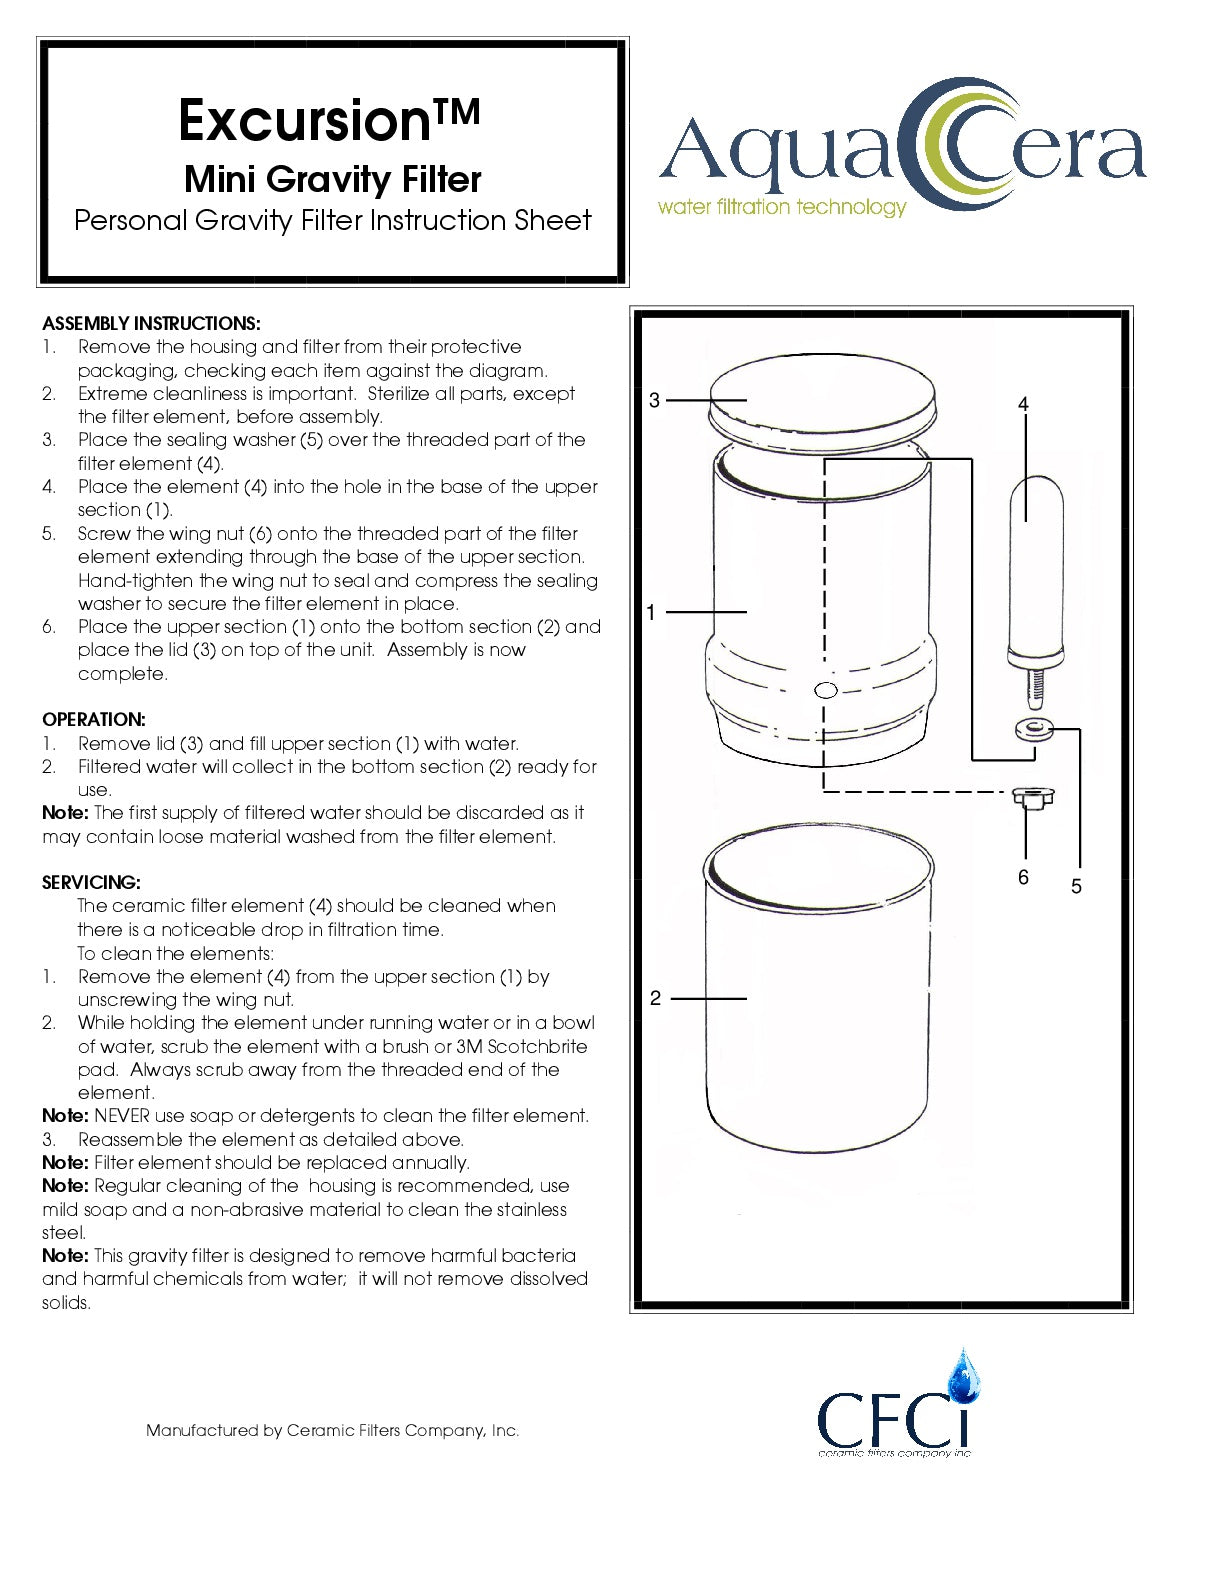 Excursion Mini Gravity Instruction Sheet